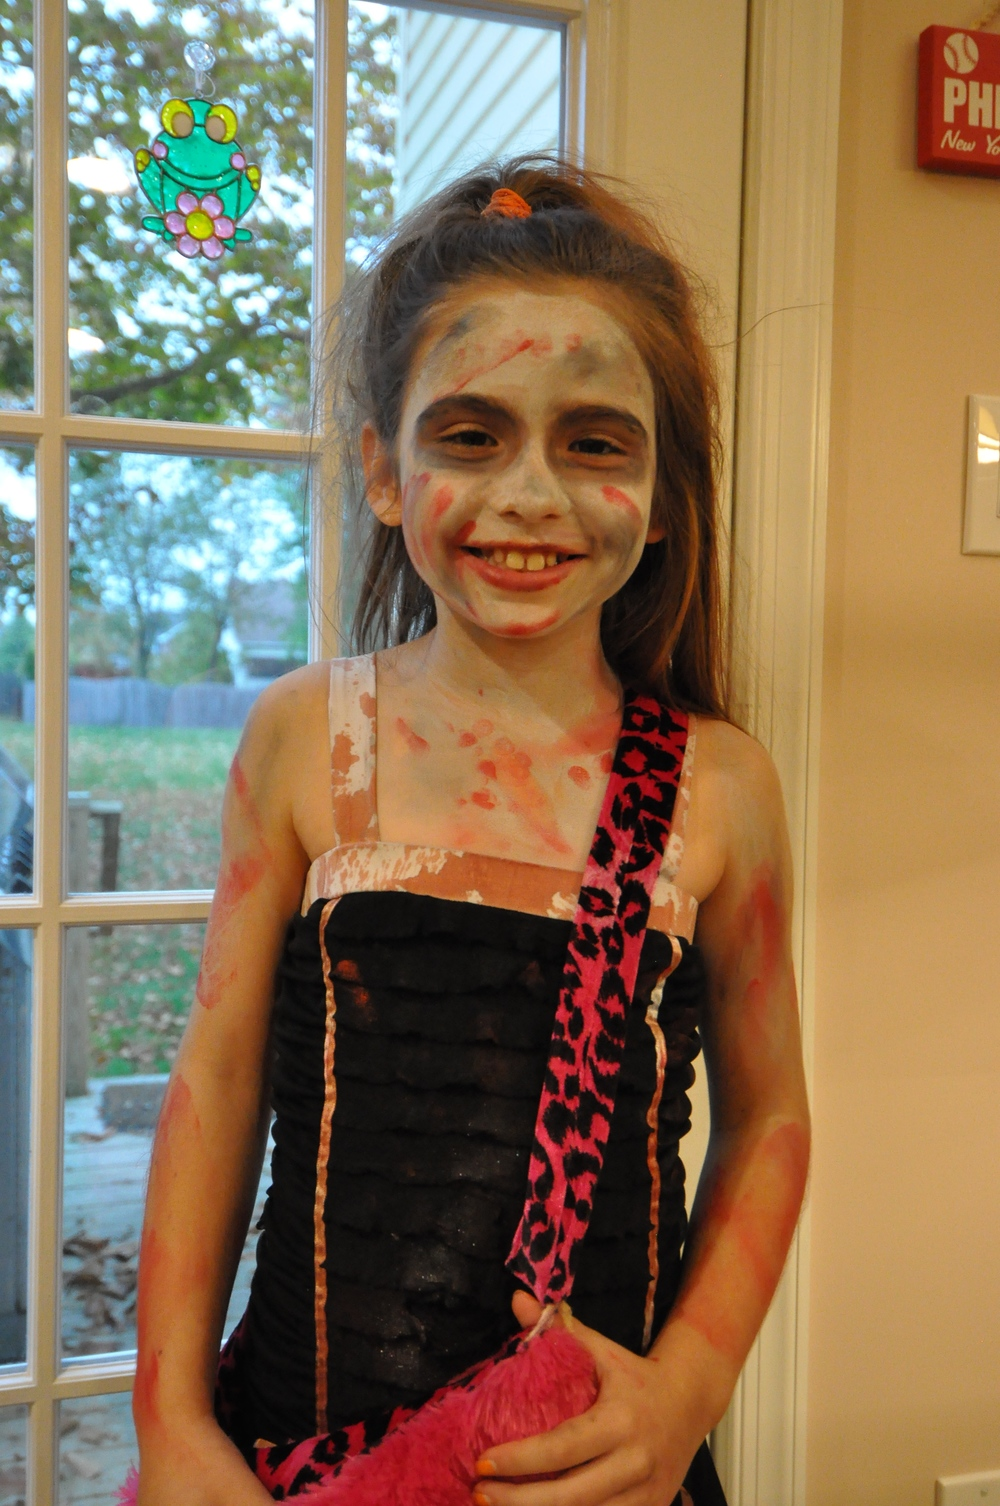 Update   on 2013-11-25 15:40 by Scott Benner  Finally getting around to post a picture of Arden as a zombie.